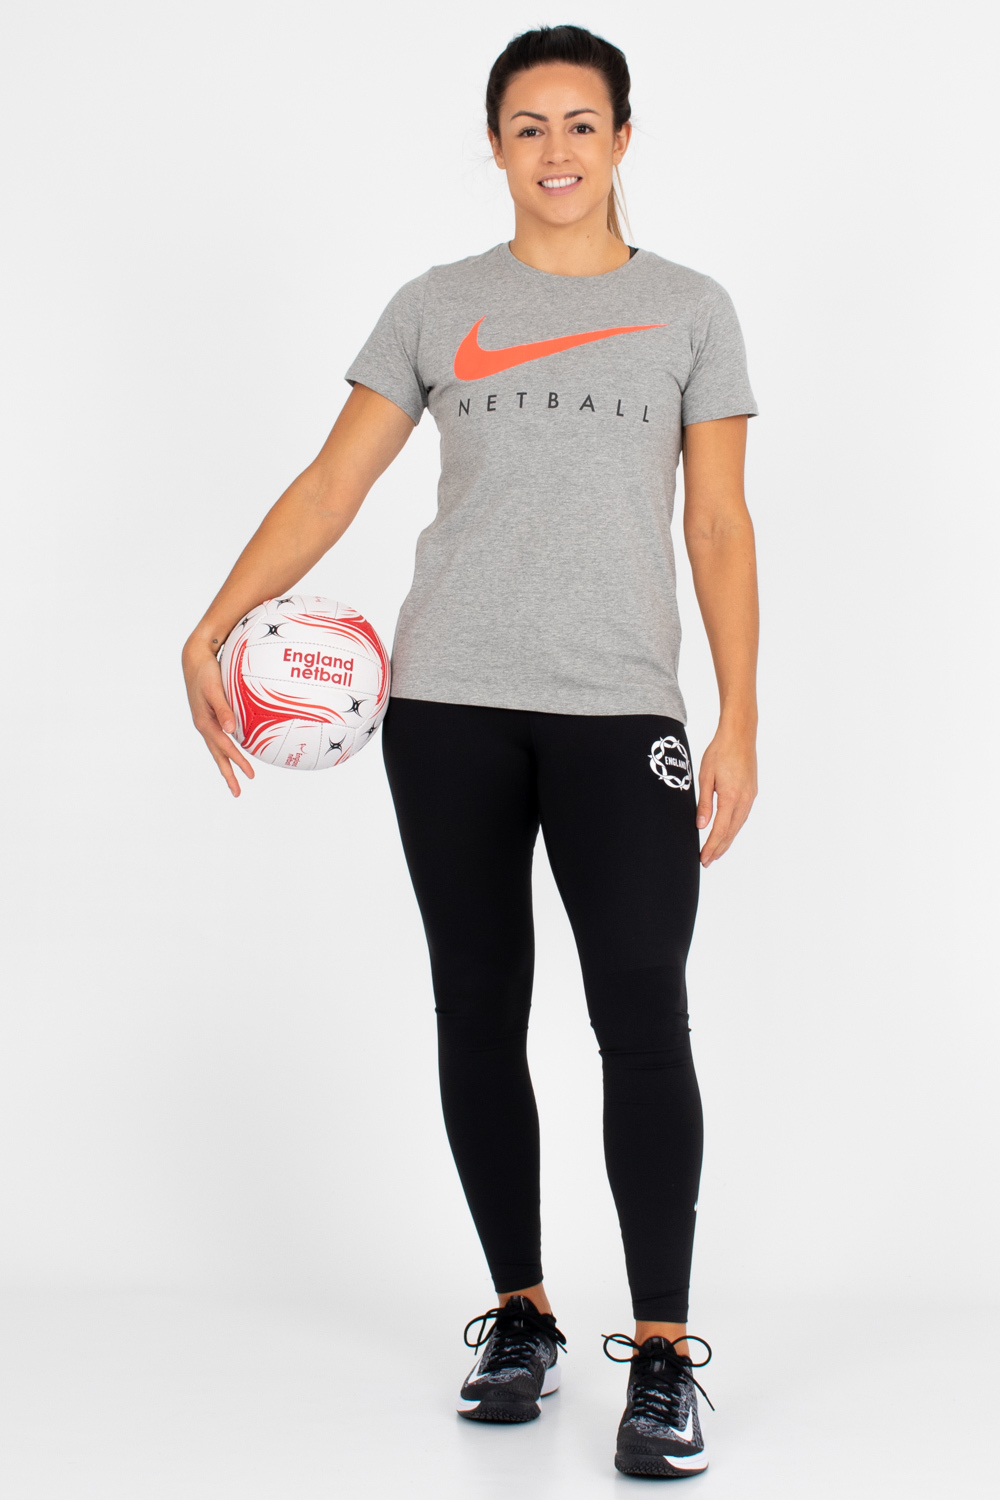 Womens England Netball Swoosh Youth's Graphic Tee